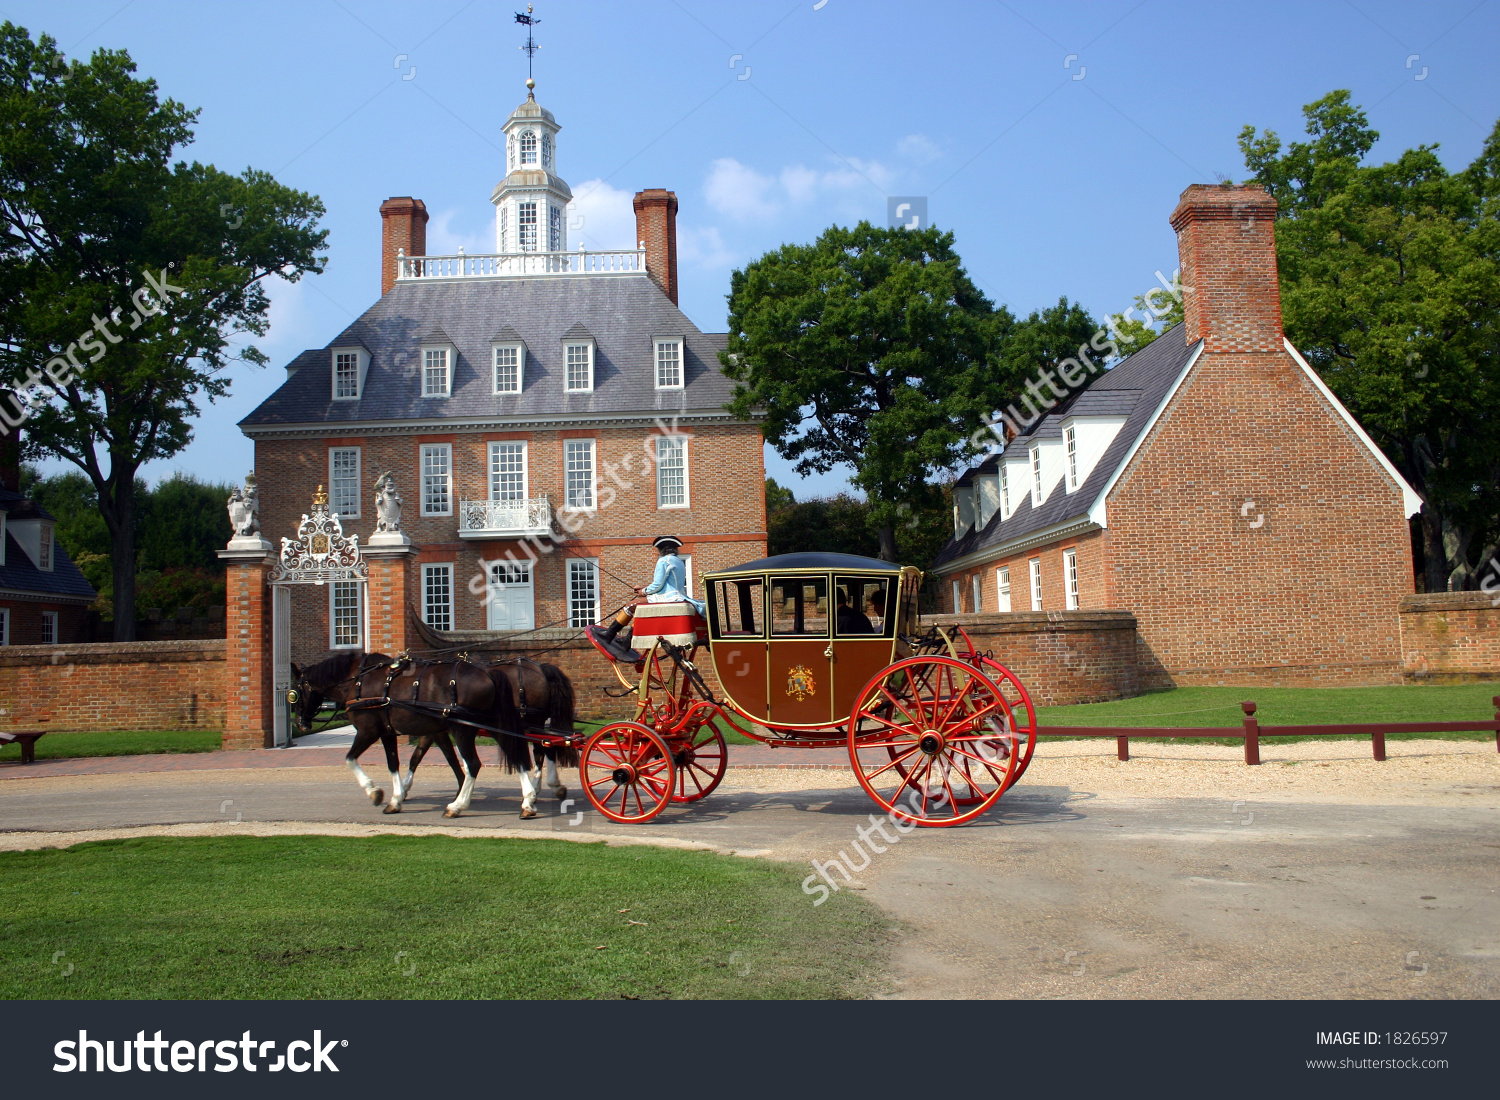 Governors Mansion Colonial Williamsburg Carriage Stock Photo.